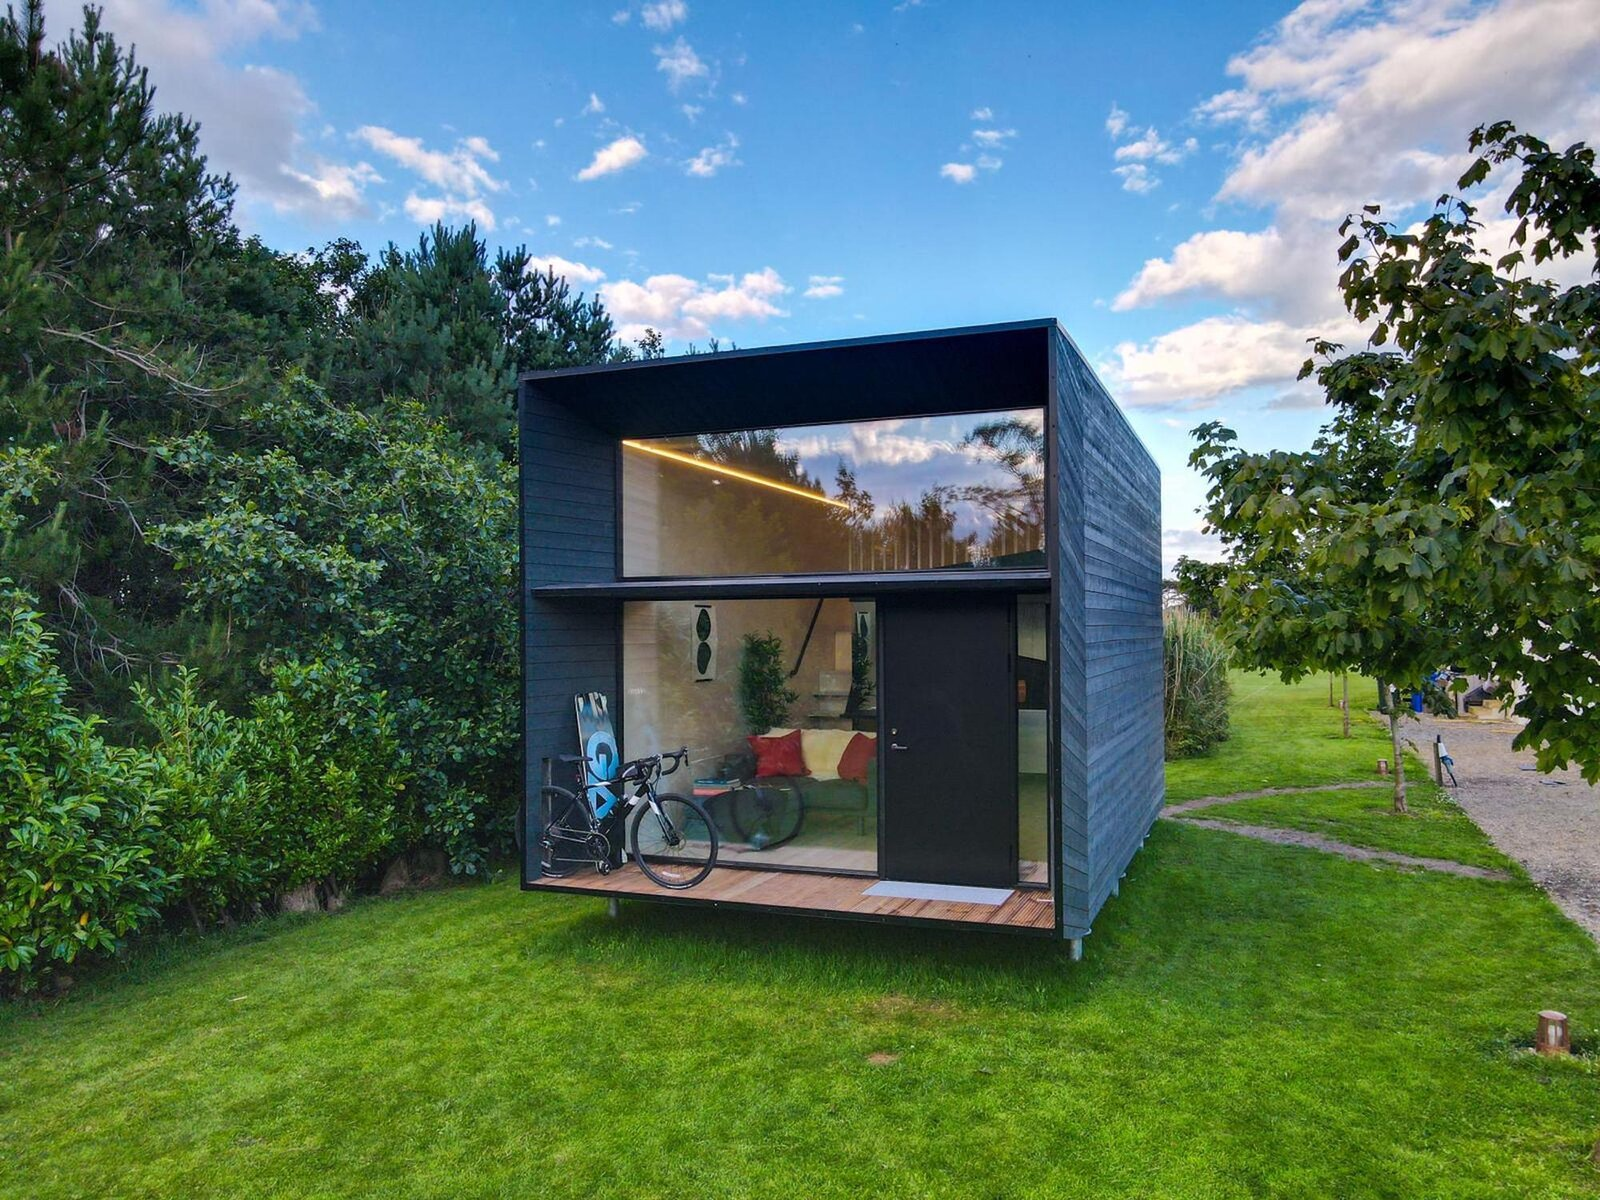 Kodasema Launches Prefab Tiny Homes in the U.S. Starting at $95K